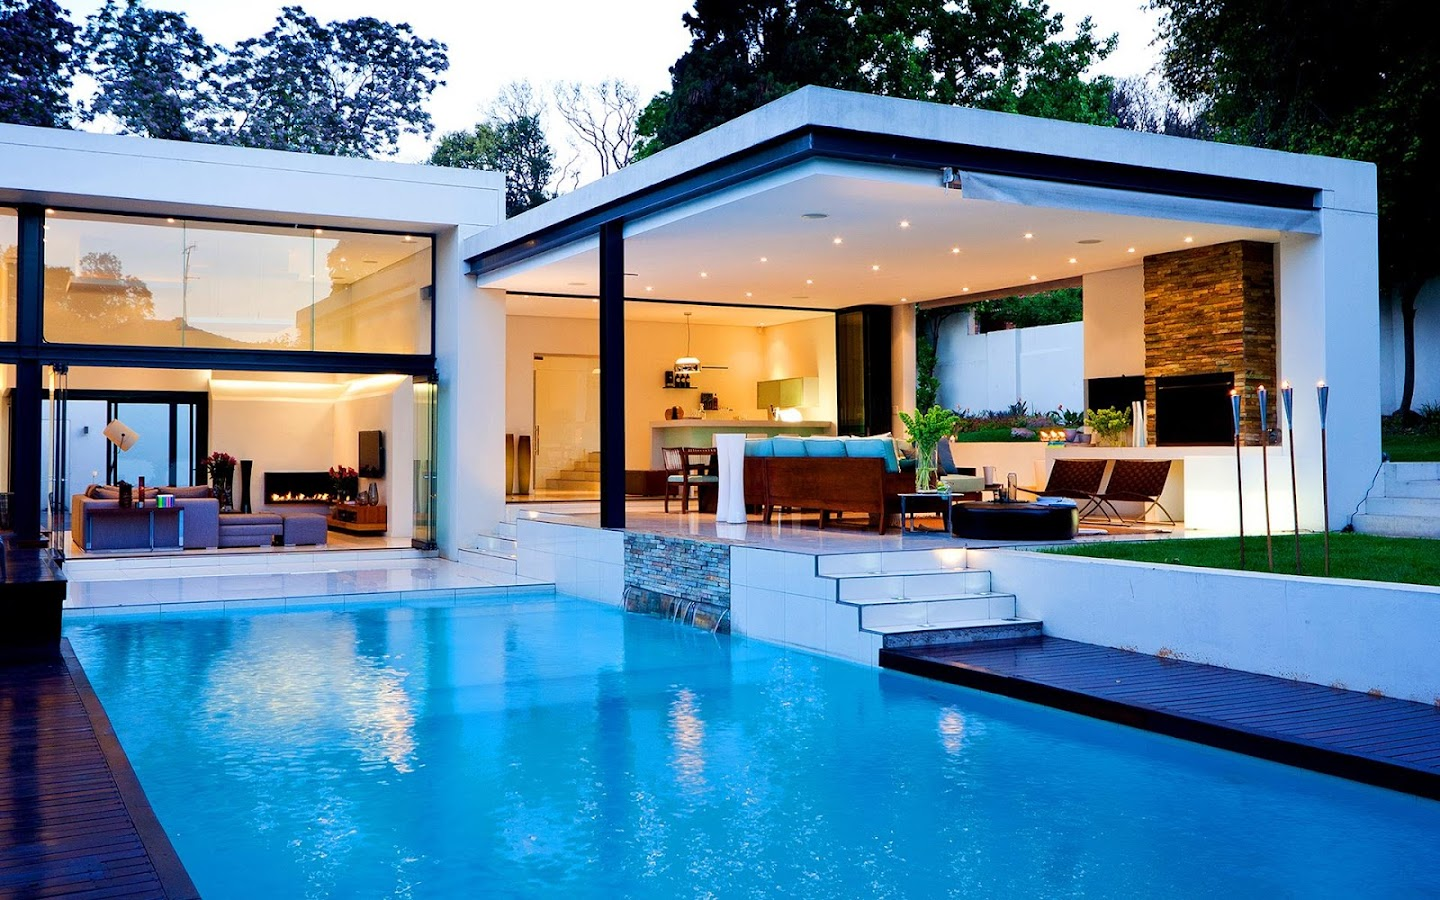 House pool design android apps p google play for Pool design app